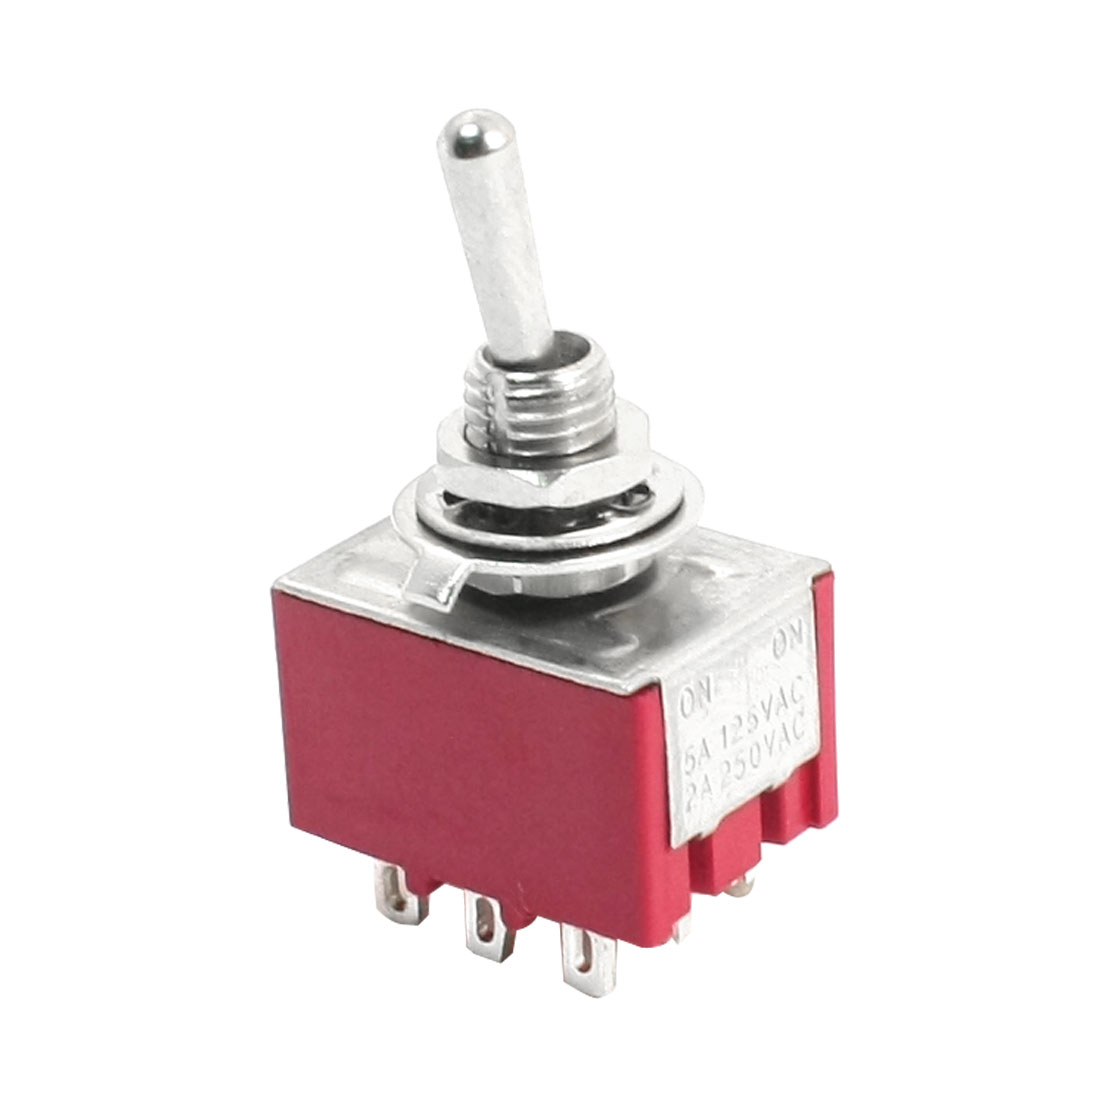 Repairing ON-ON 3PDT 9 Pins Terminal Rocker Type Toggle Switch AC 125V 5A